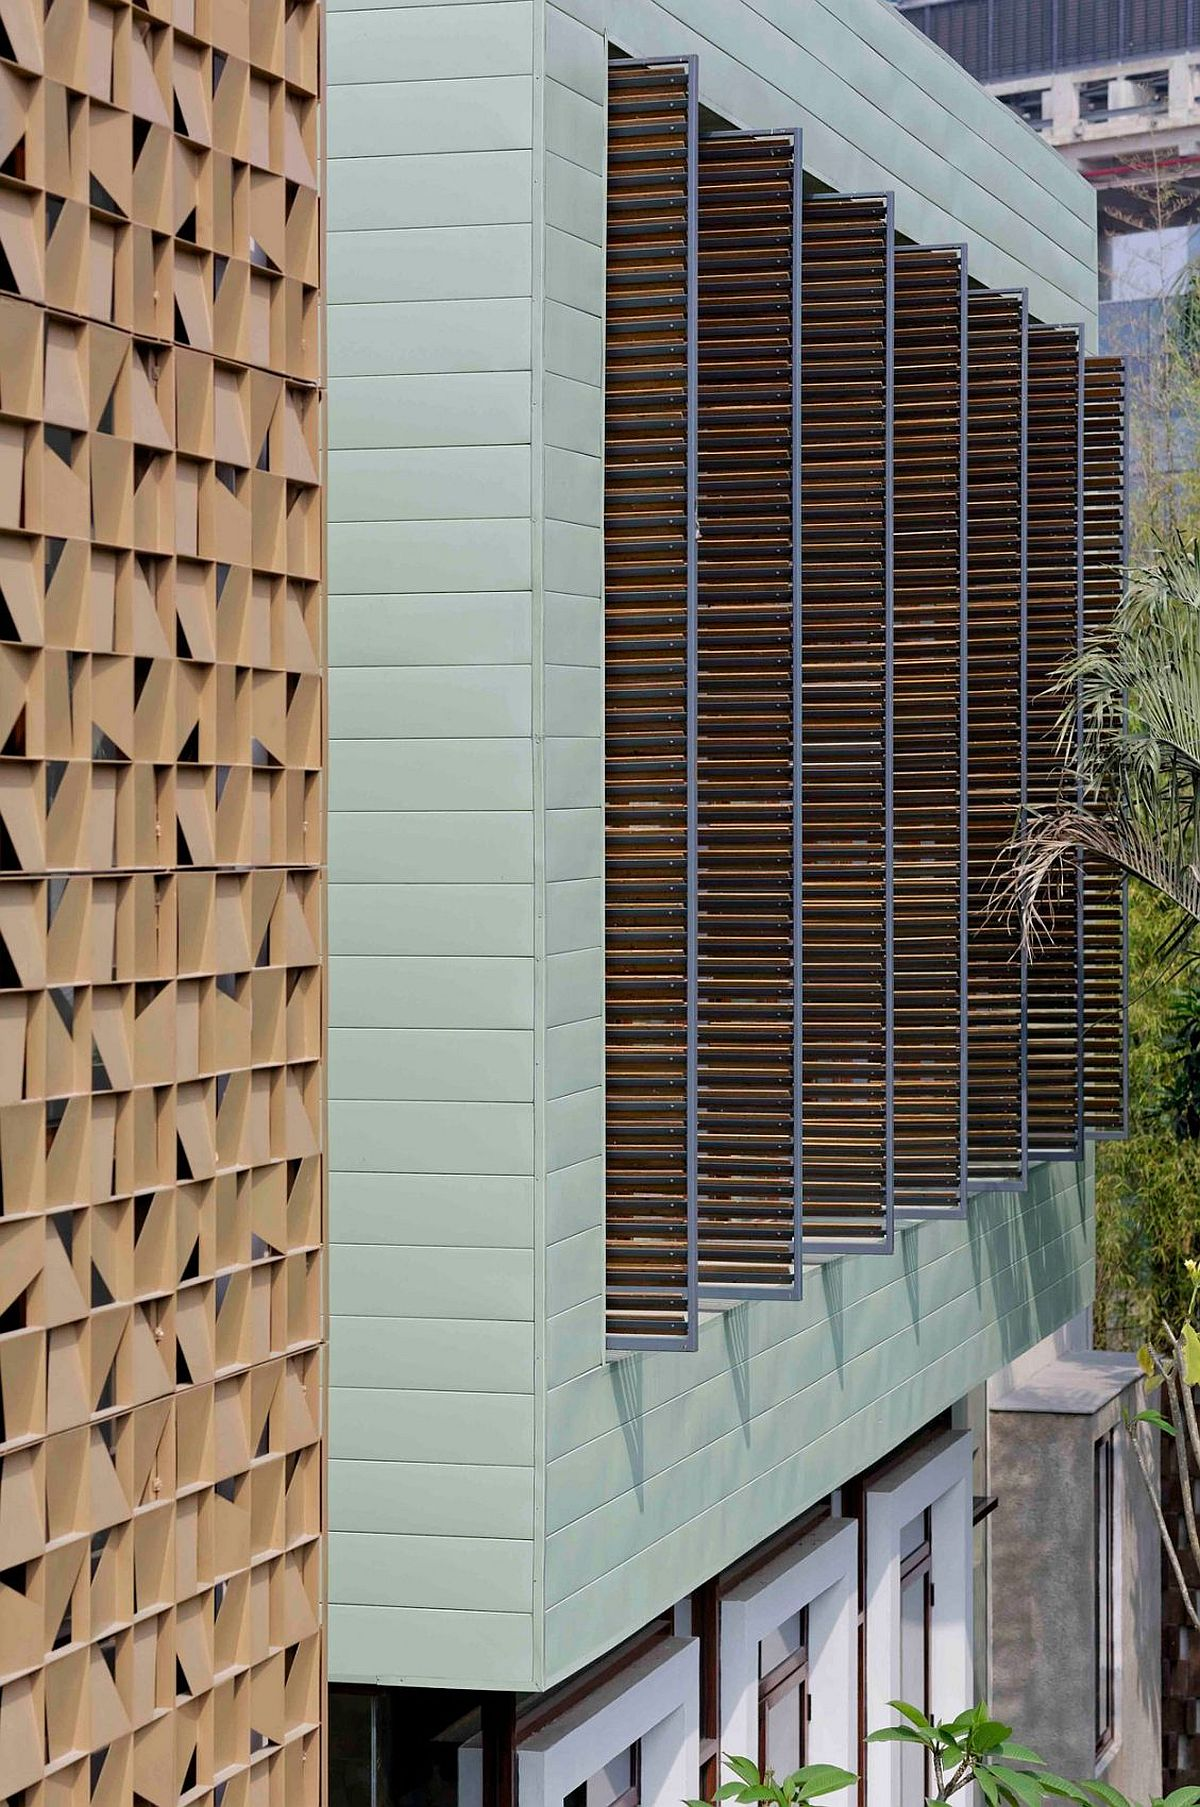 Wooden blinds allow the homeowners to switch between privacy and unabated views